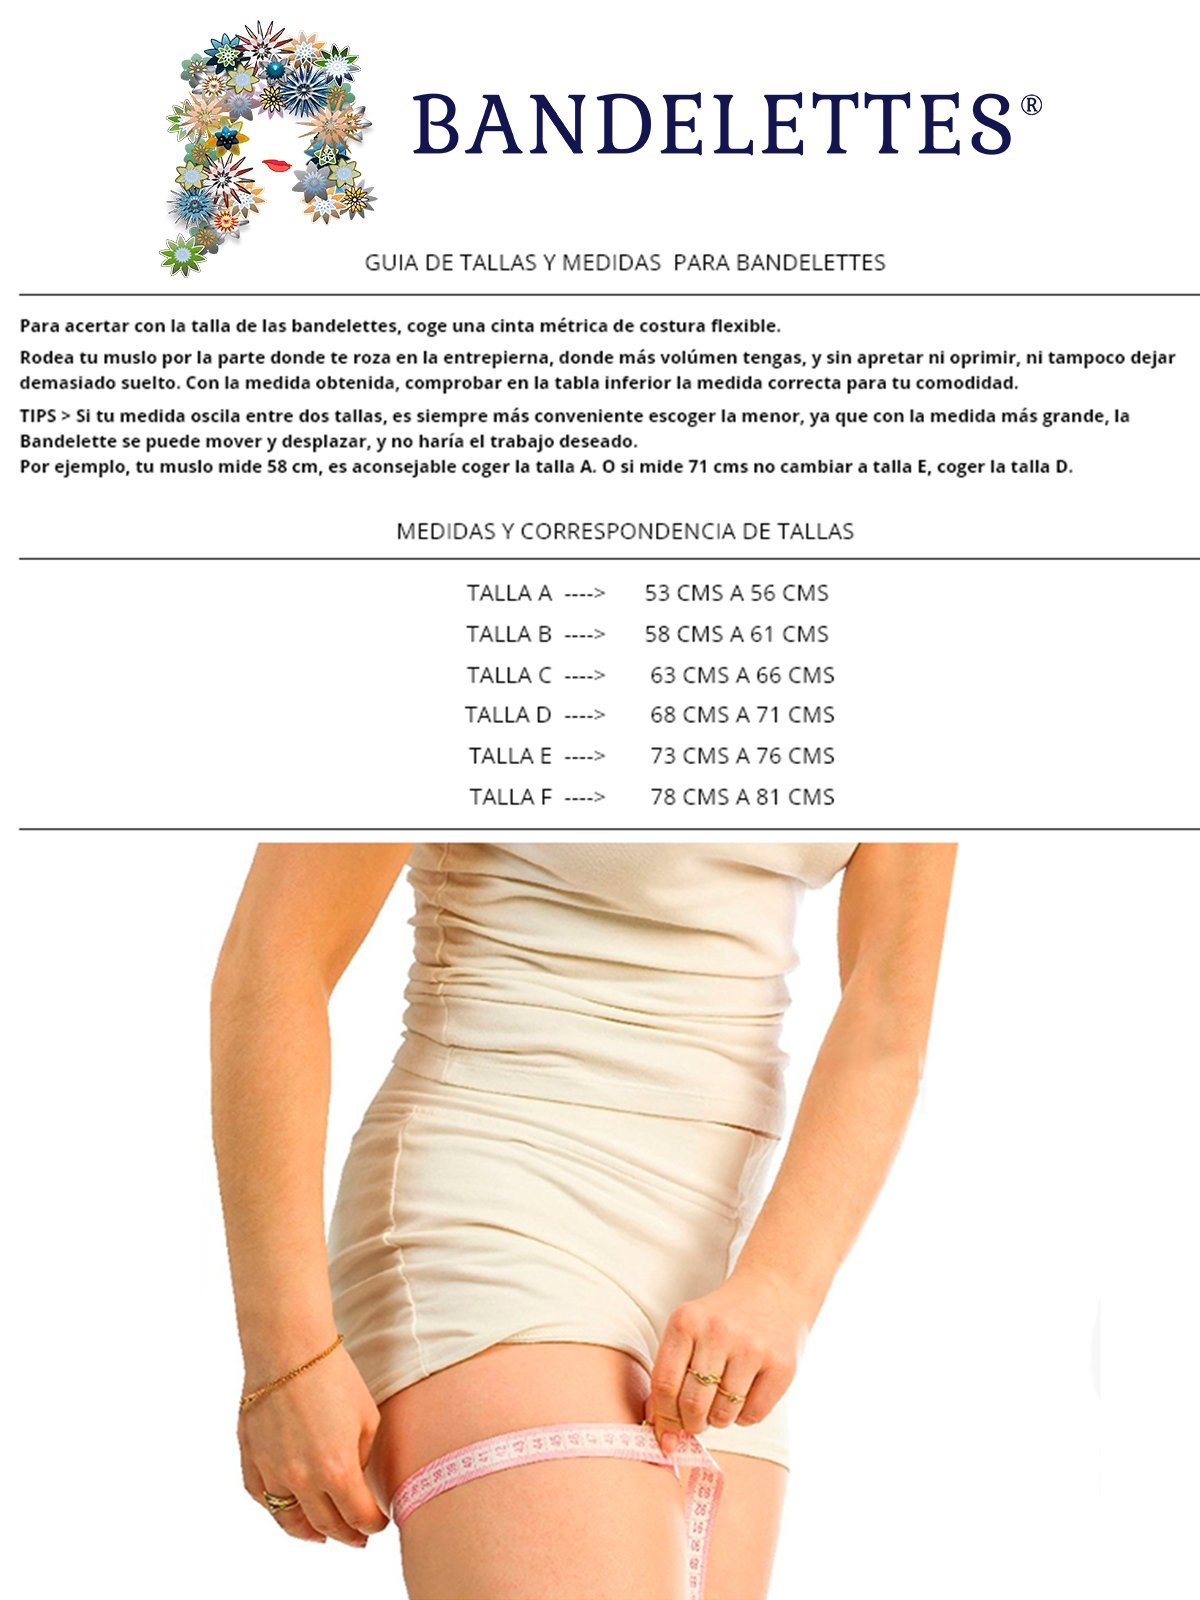 Bandelettes Elastic Anti-Chafing Thigh Bands - Prevent Thigh Chafing - Beige Onyx, Size C